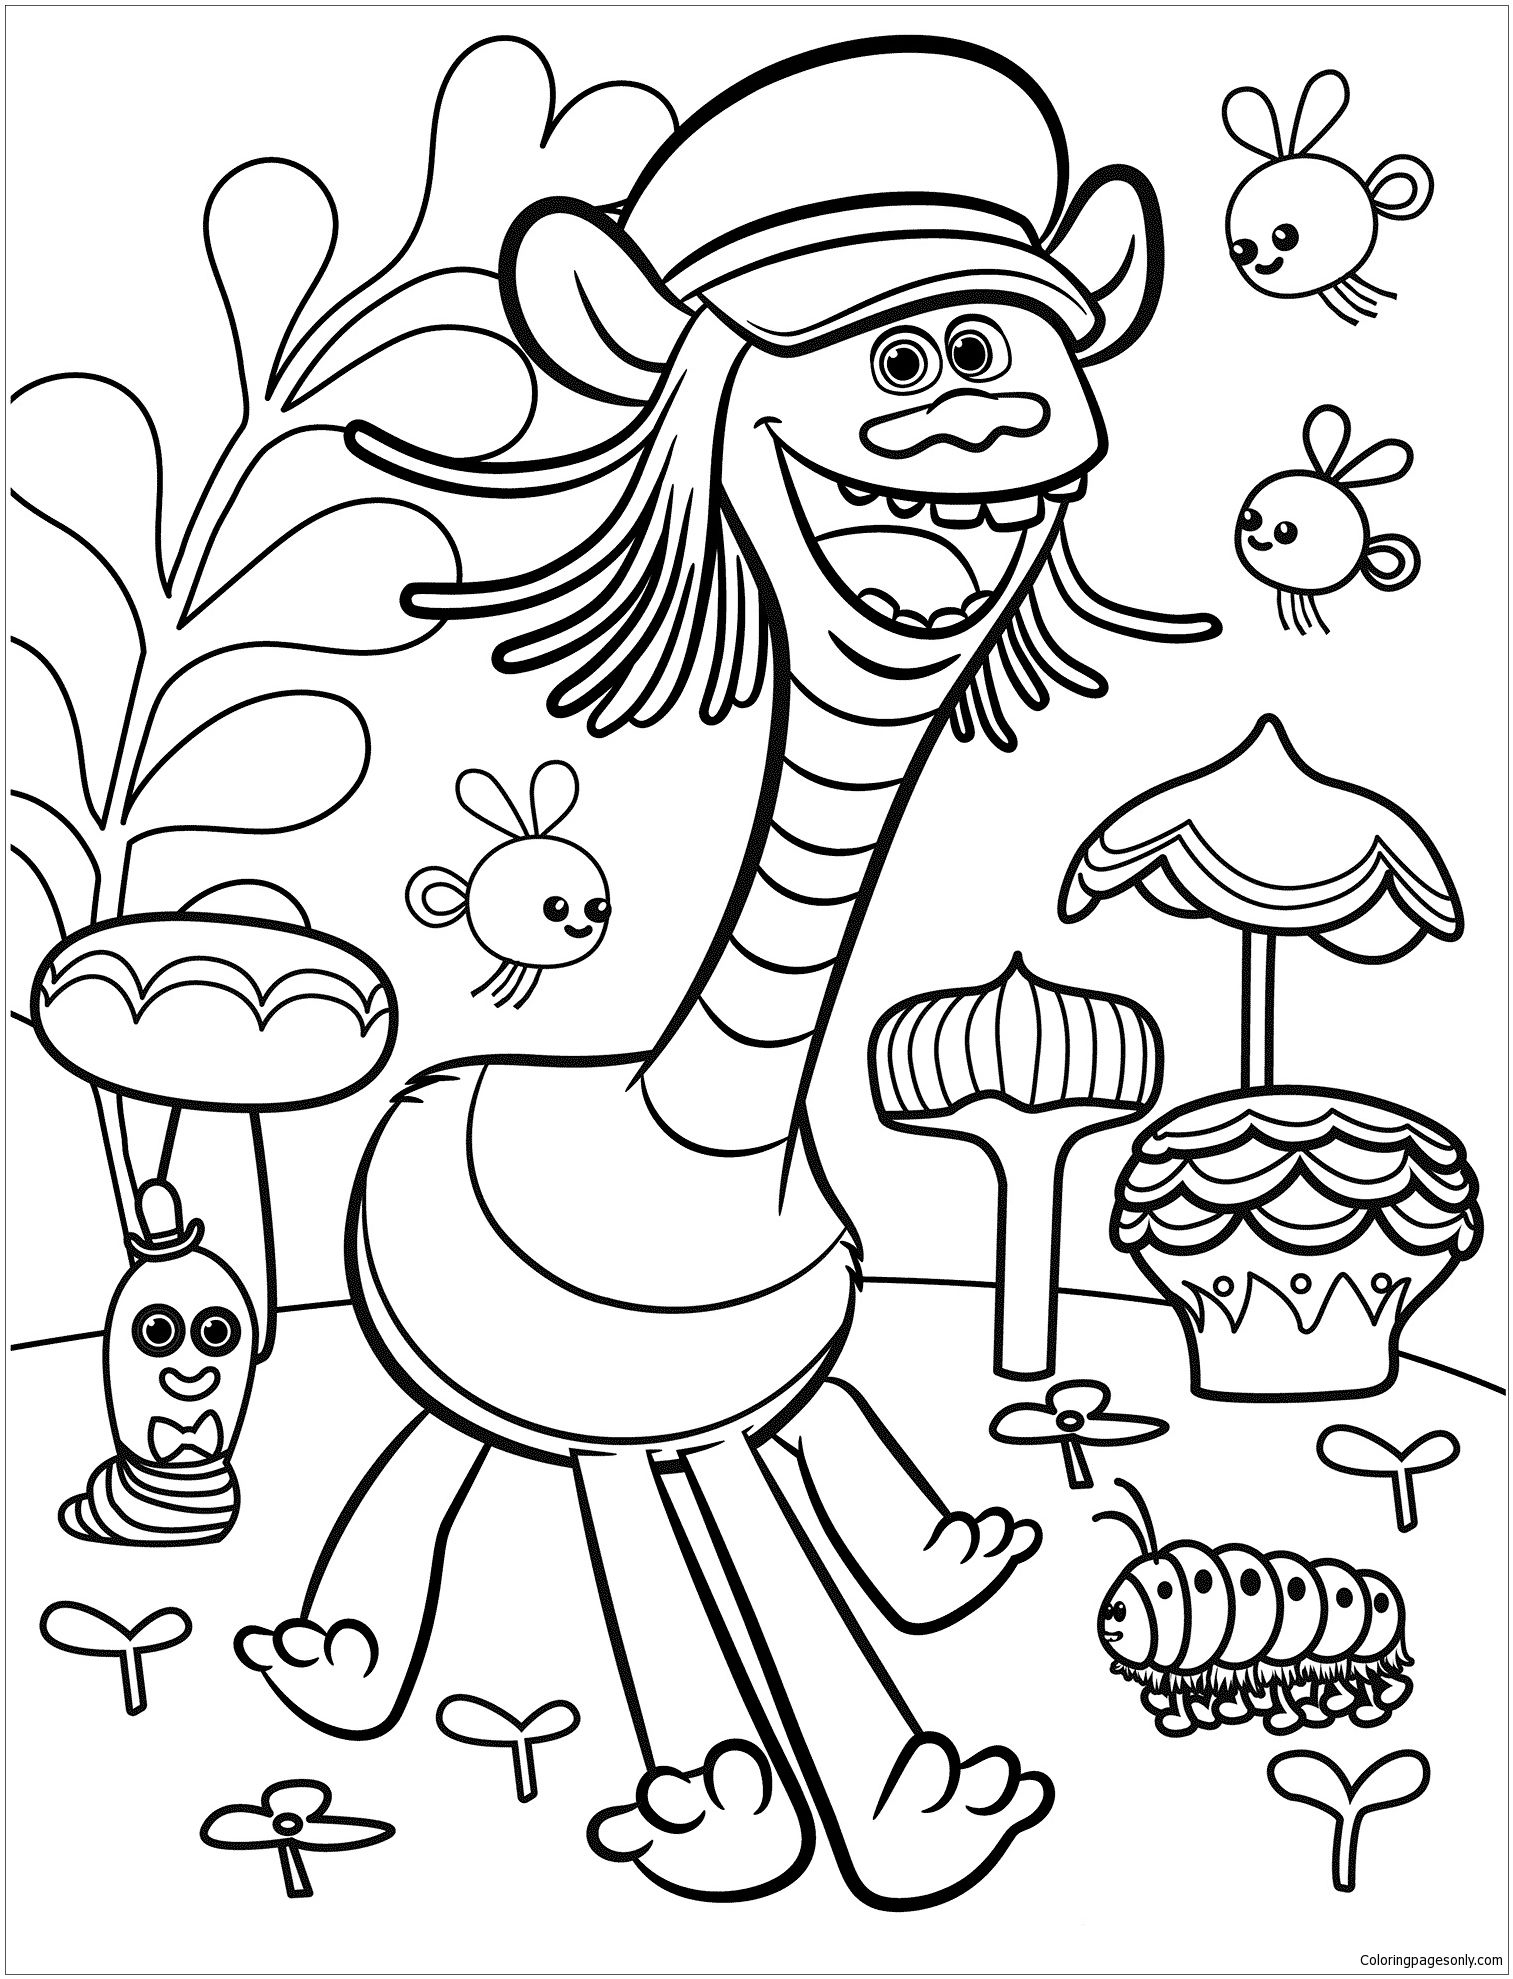 Trolls Movie 1 Coloring Page - Free Coloring Pages Online | Trolls - Free Printable Troll Coloring Pages